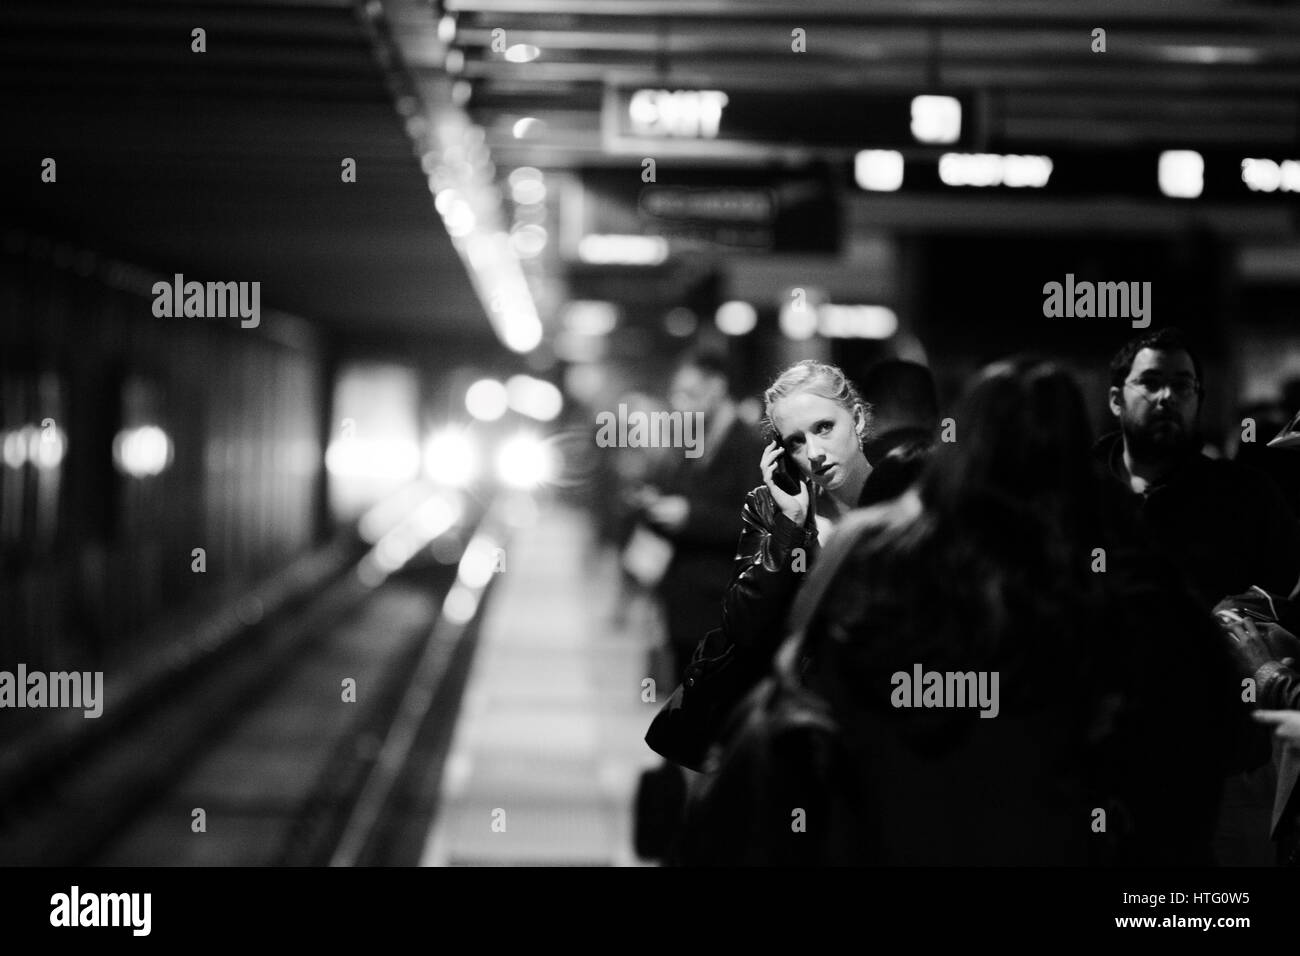 Woman standing among subway commuters talking on her cell phone. - Stock Image